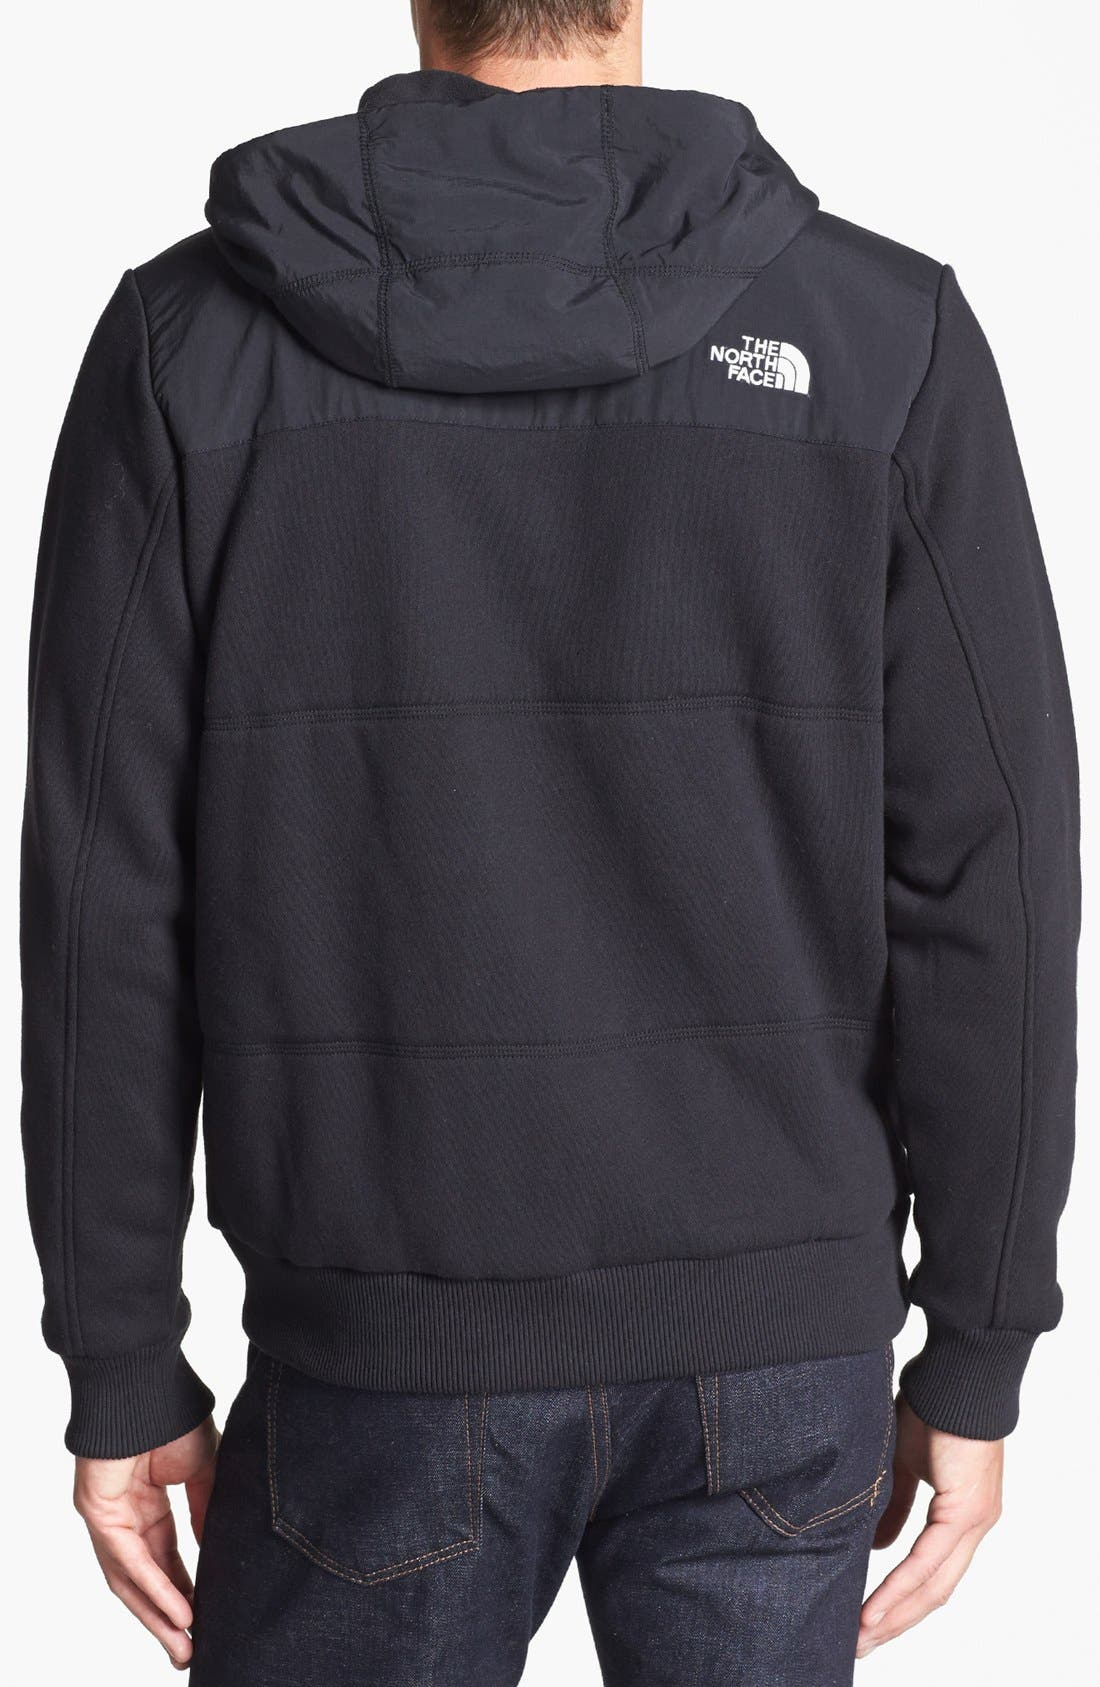 Alternate Image 2  - The North Face 'Rivington' Hooded Fleece Sweatshirt